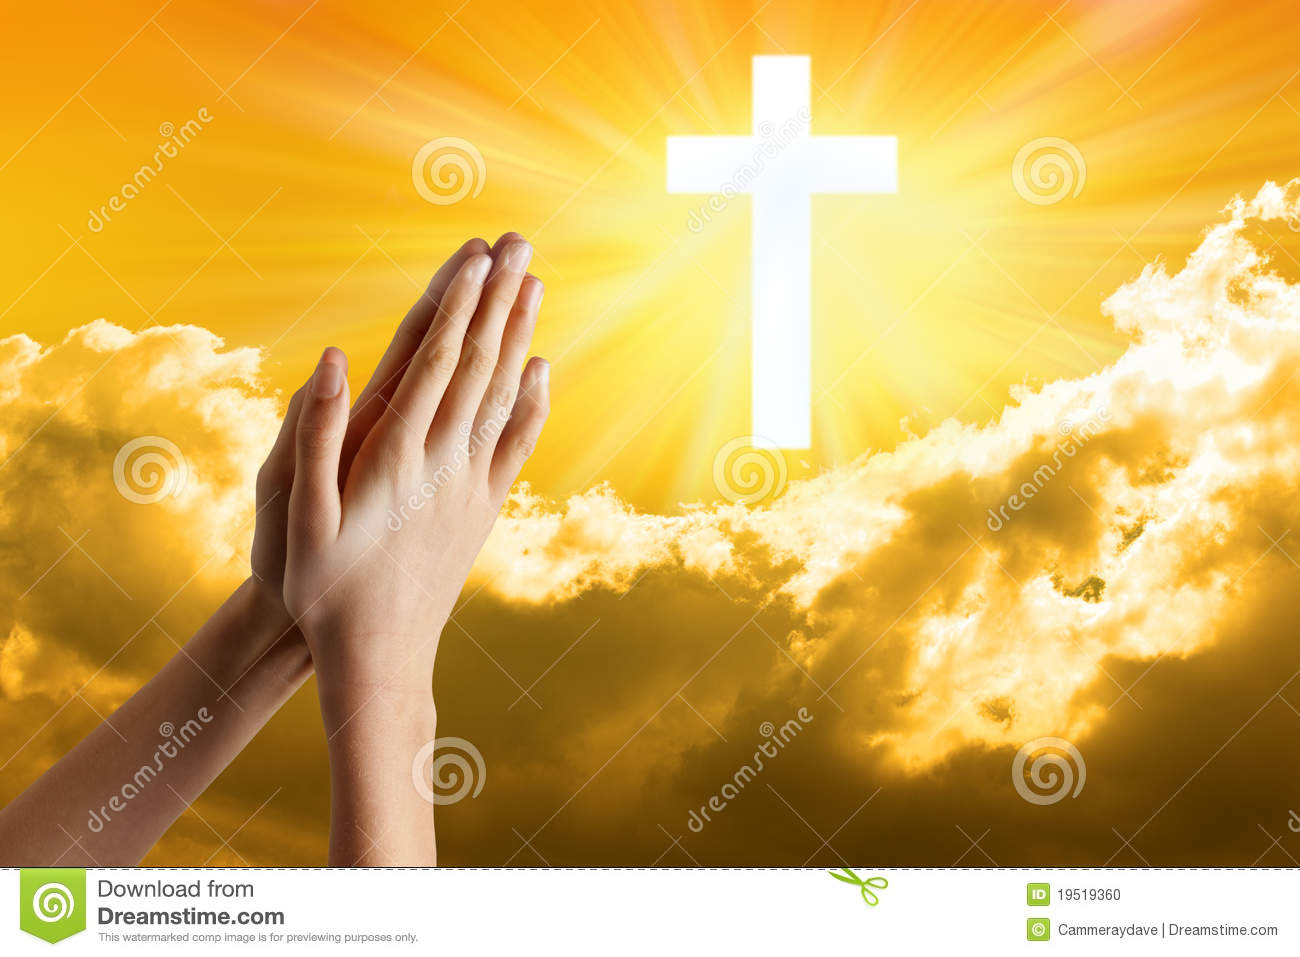 child prayer hands praying faith stock photo image of sunrise clipart free Morning Sunrise Clip Art